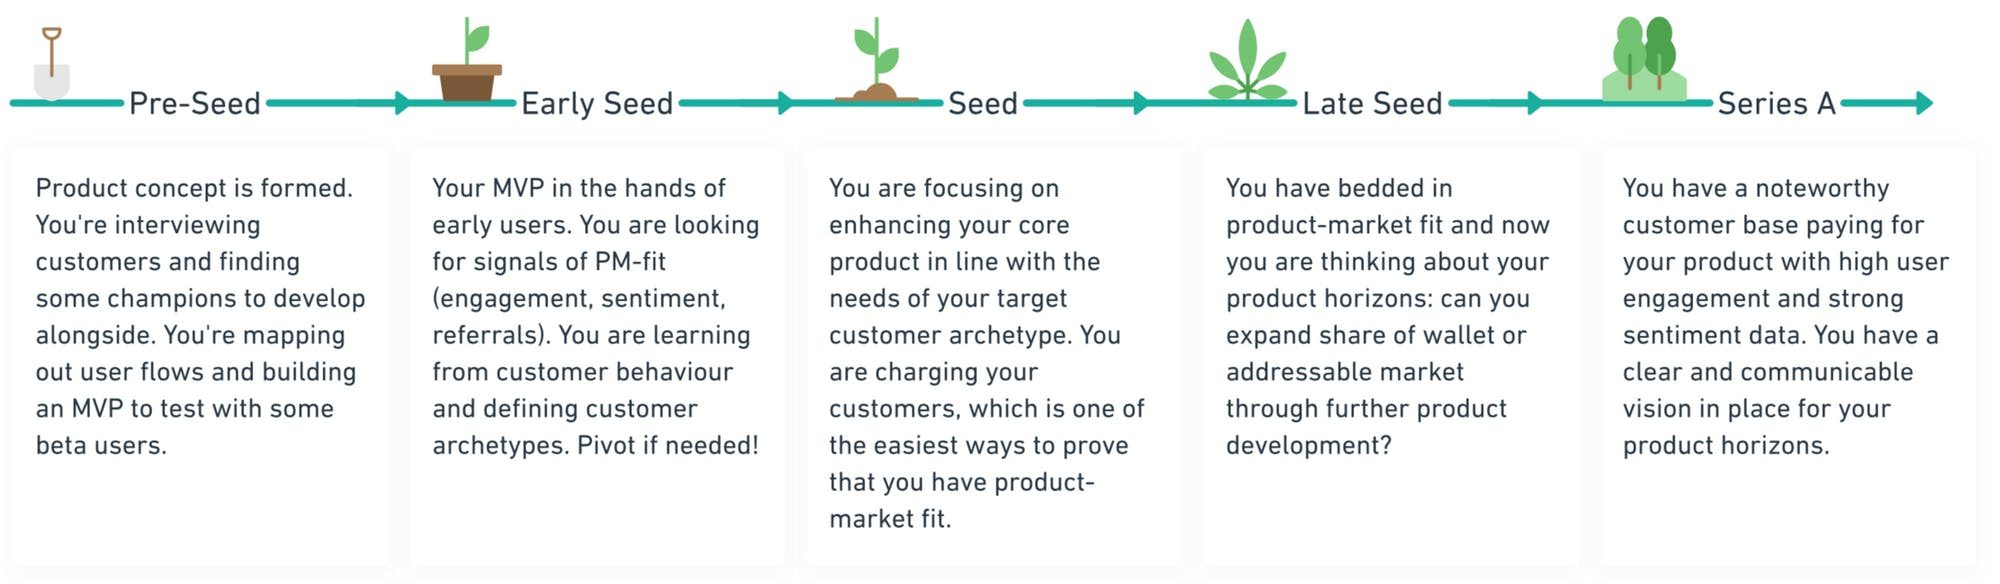 The Goal: (1) A beautiful product that customers love to use and (2) a roadmap that will make you famous.